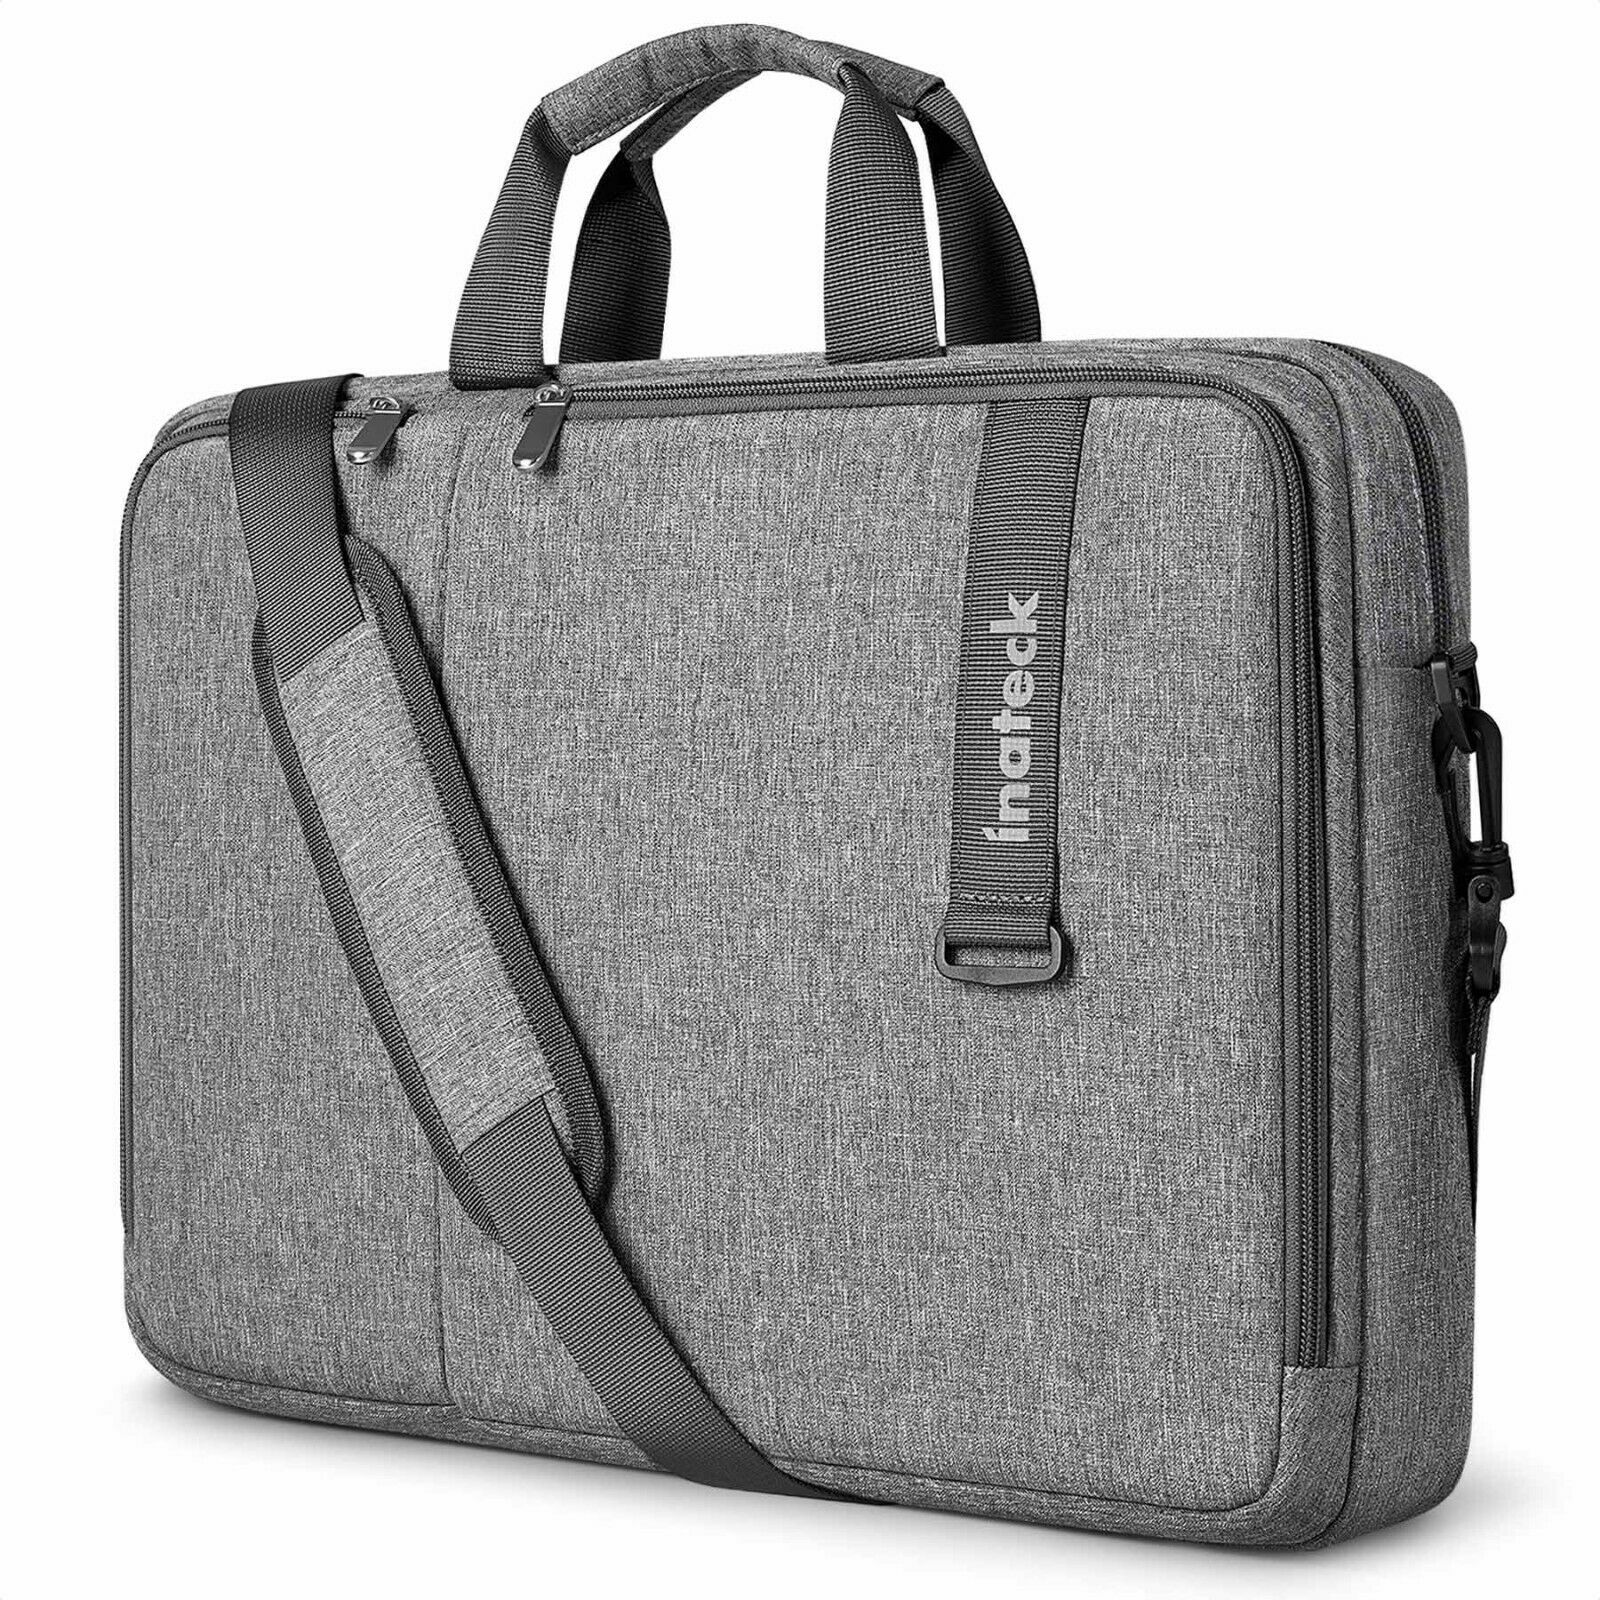 "15.6"" Laptop Sleeve Bag Case 360° Protection Shockproof Handbag. Buy it now for 25.99"